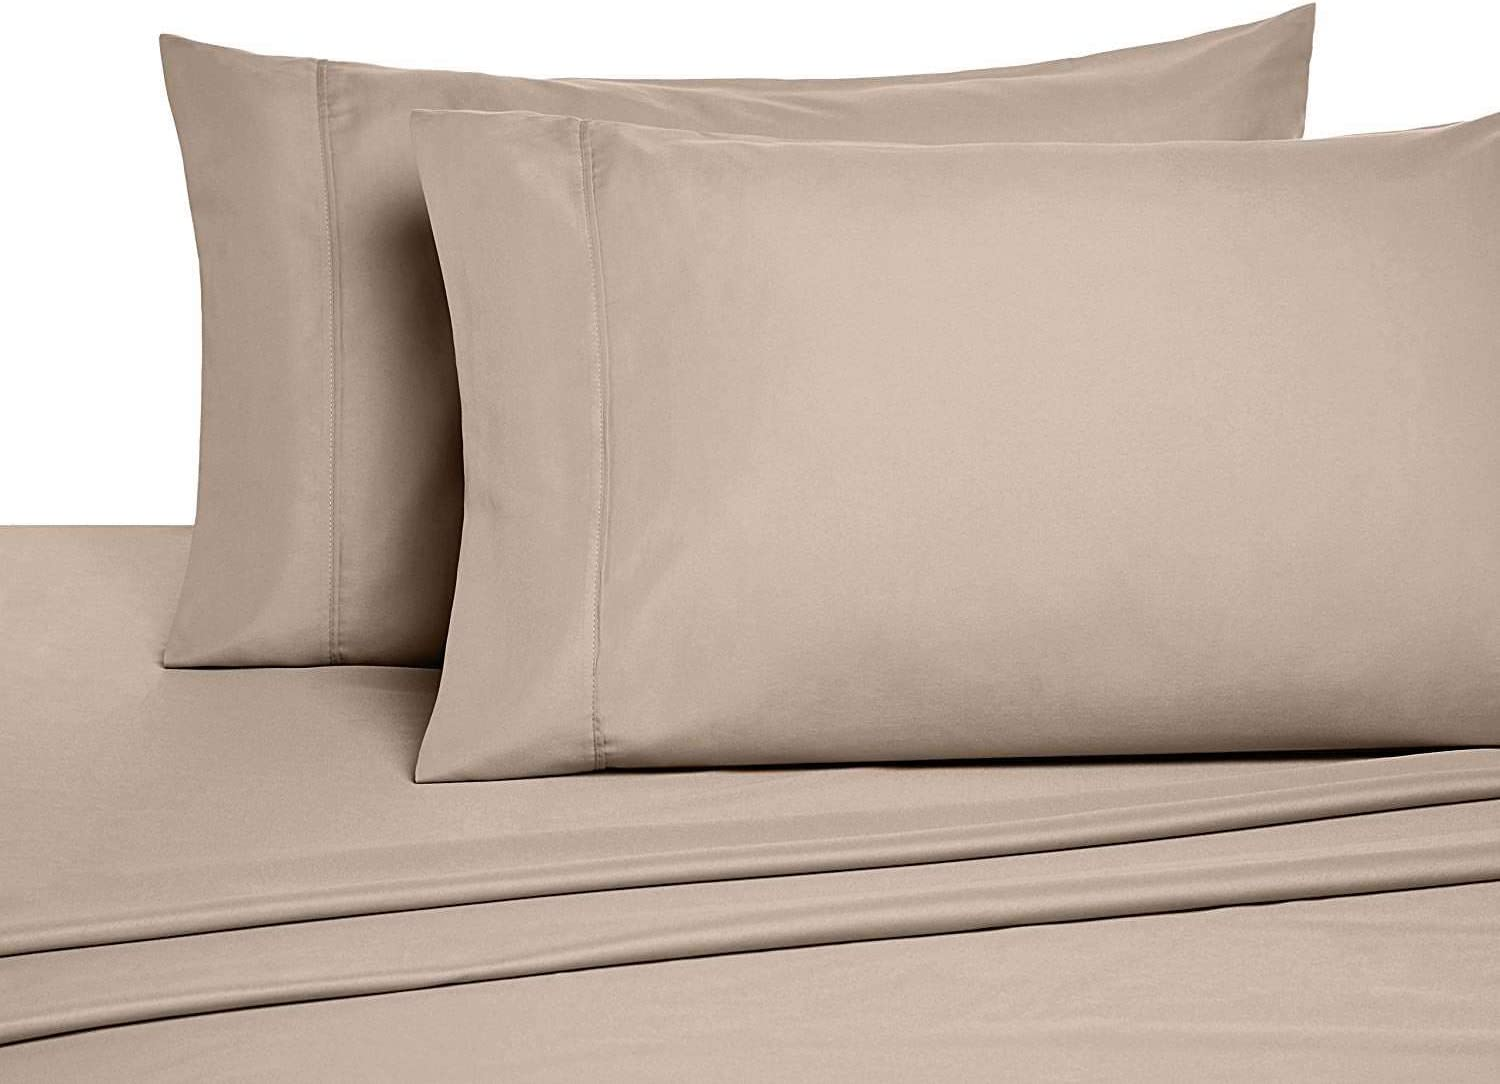 California King Size Sheets Sets - D Pocket 67% OFF of fixed price 15